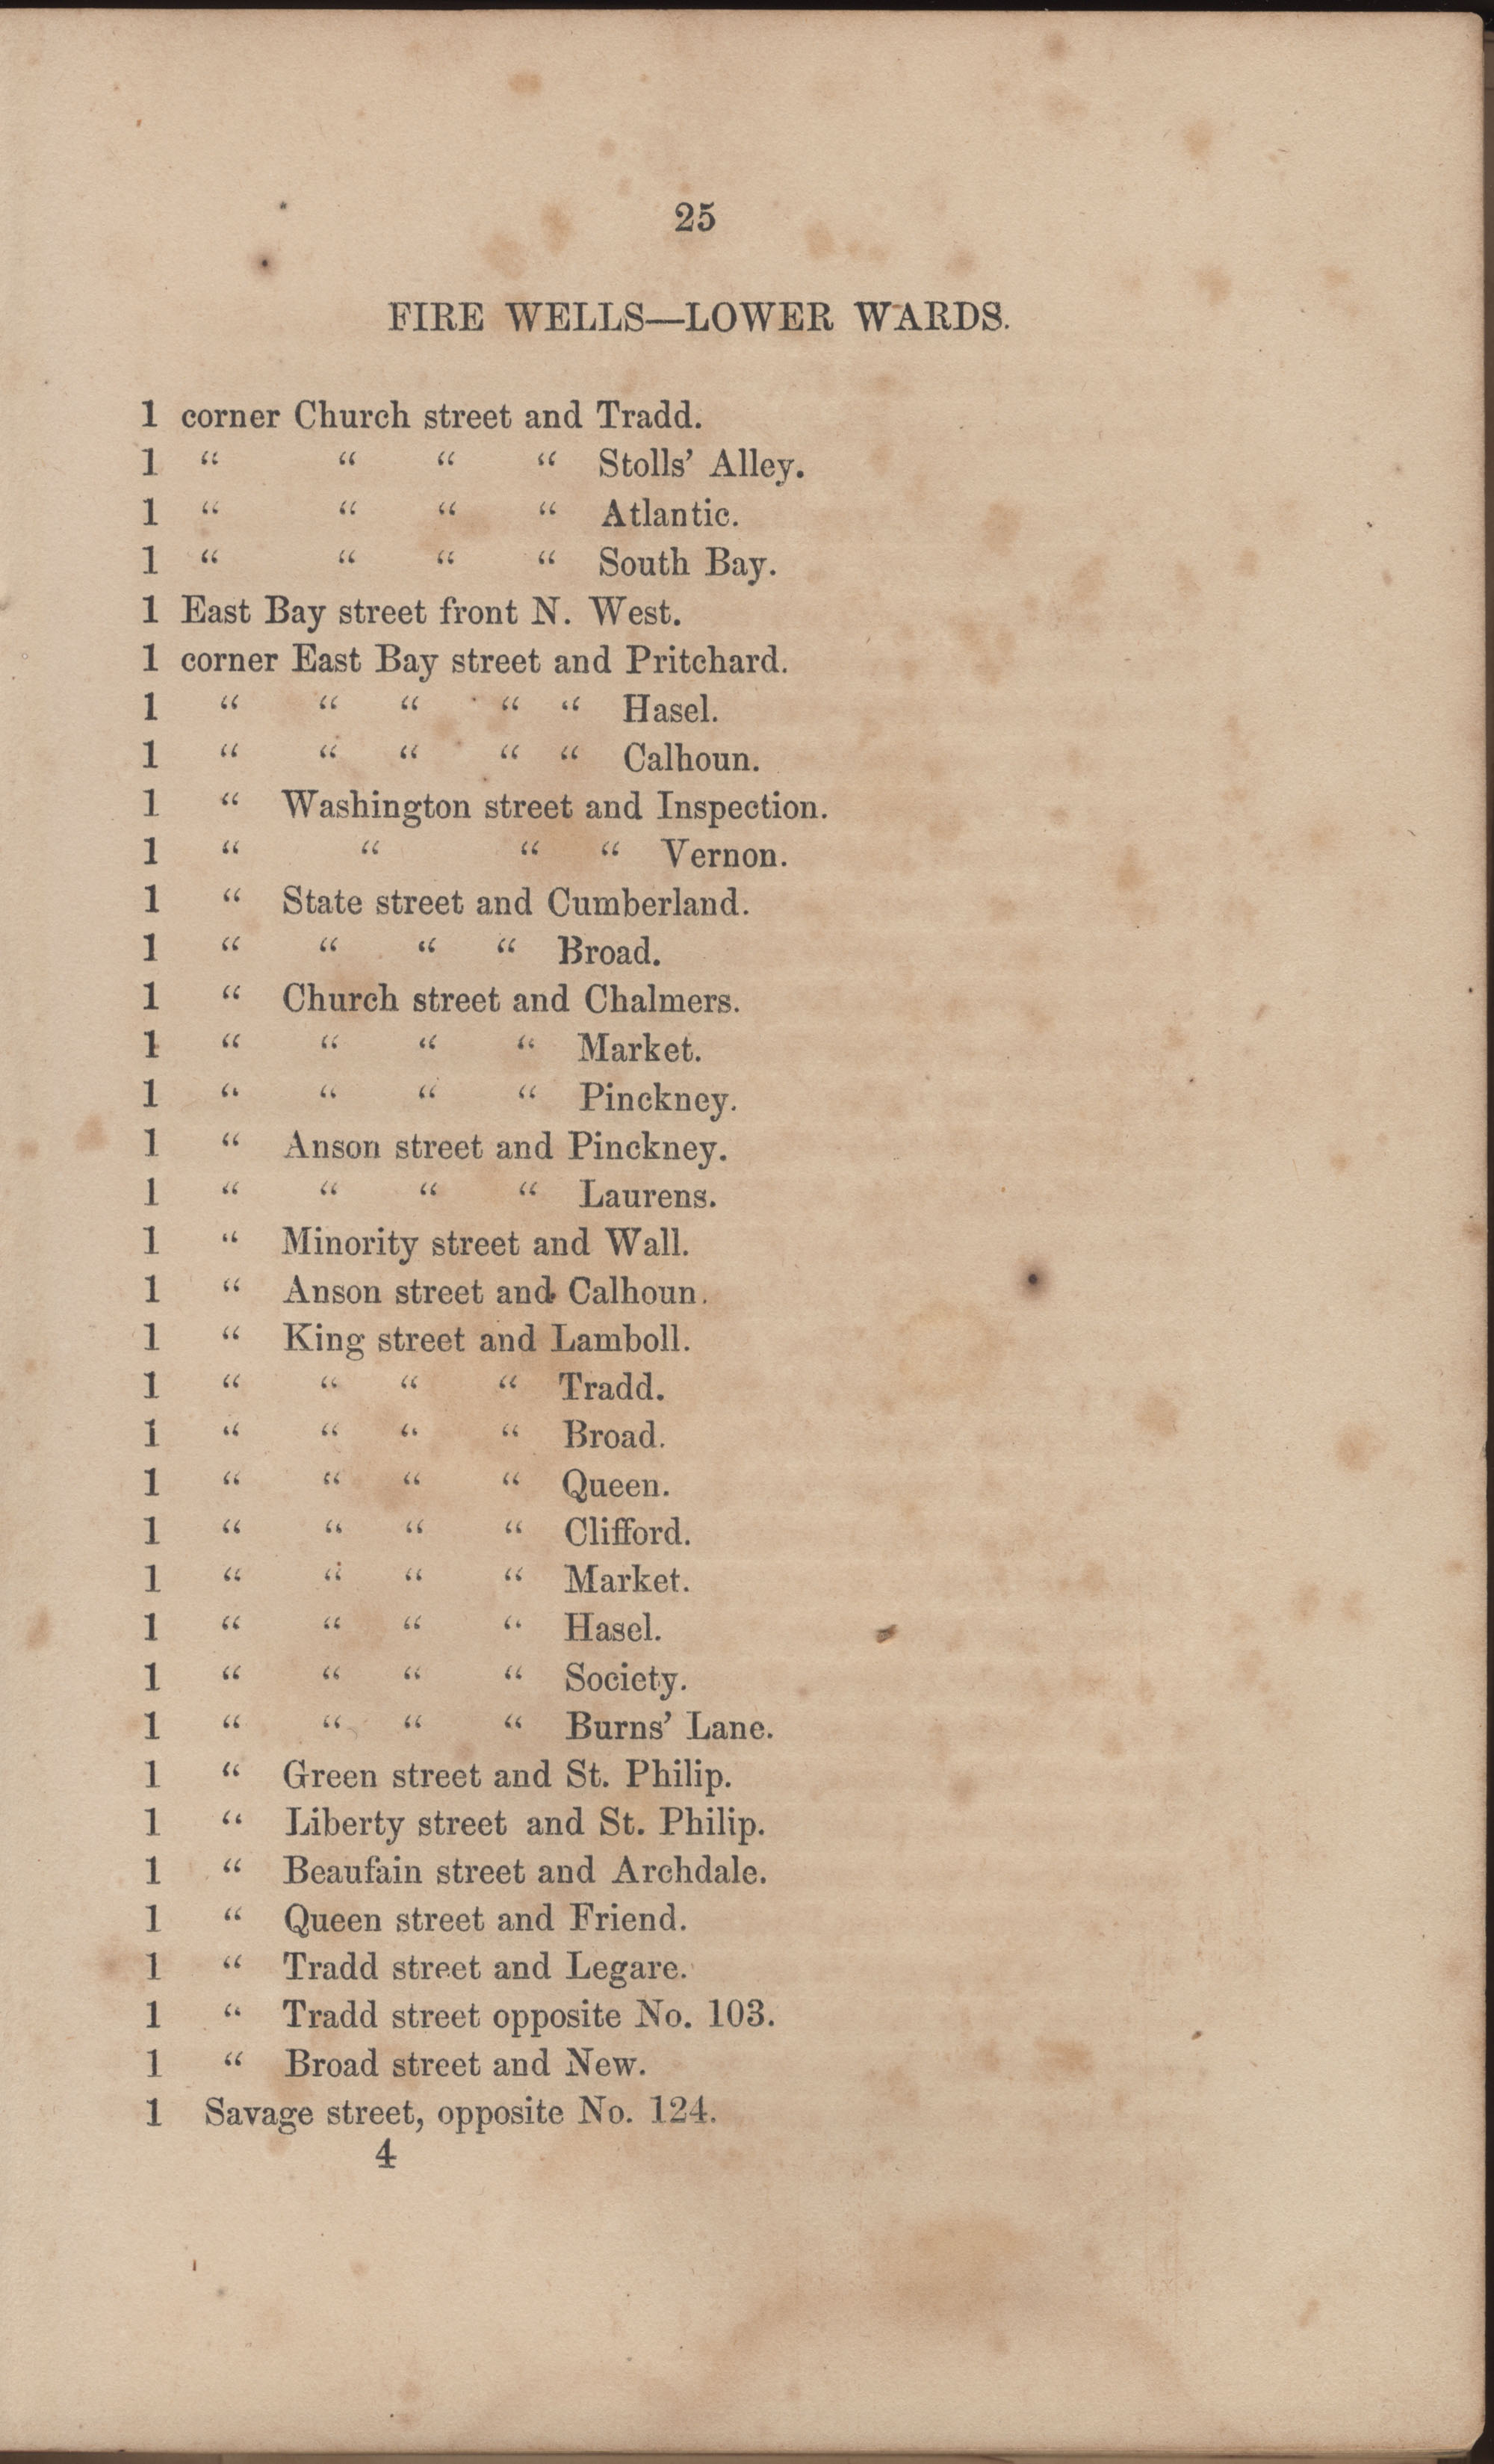 Annual Report of the Chief of the Fire Department of the City of Charleston, page 86